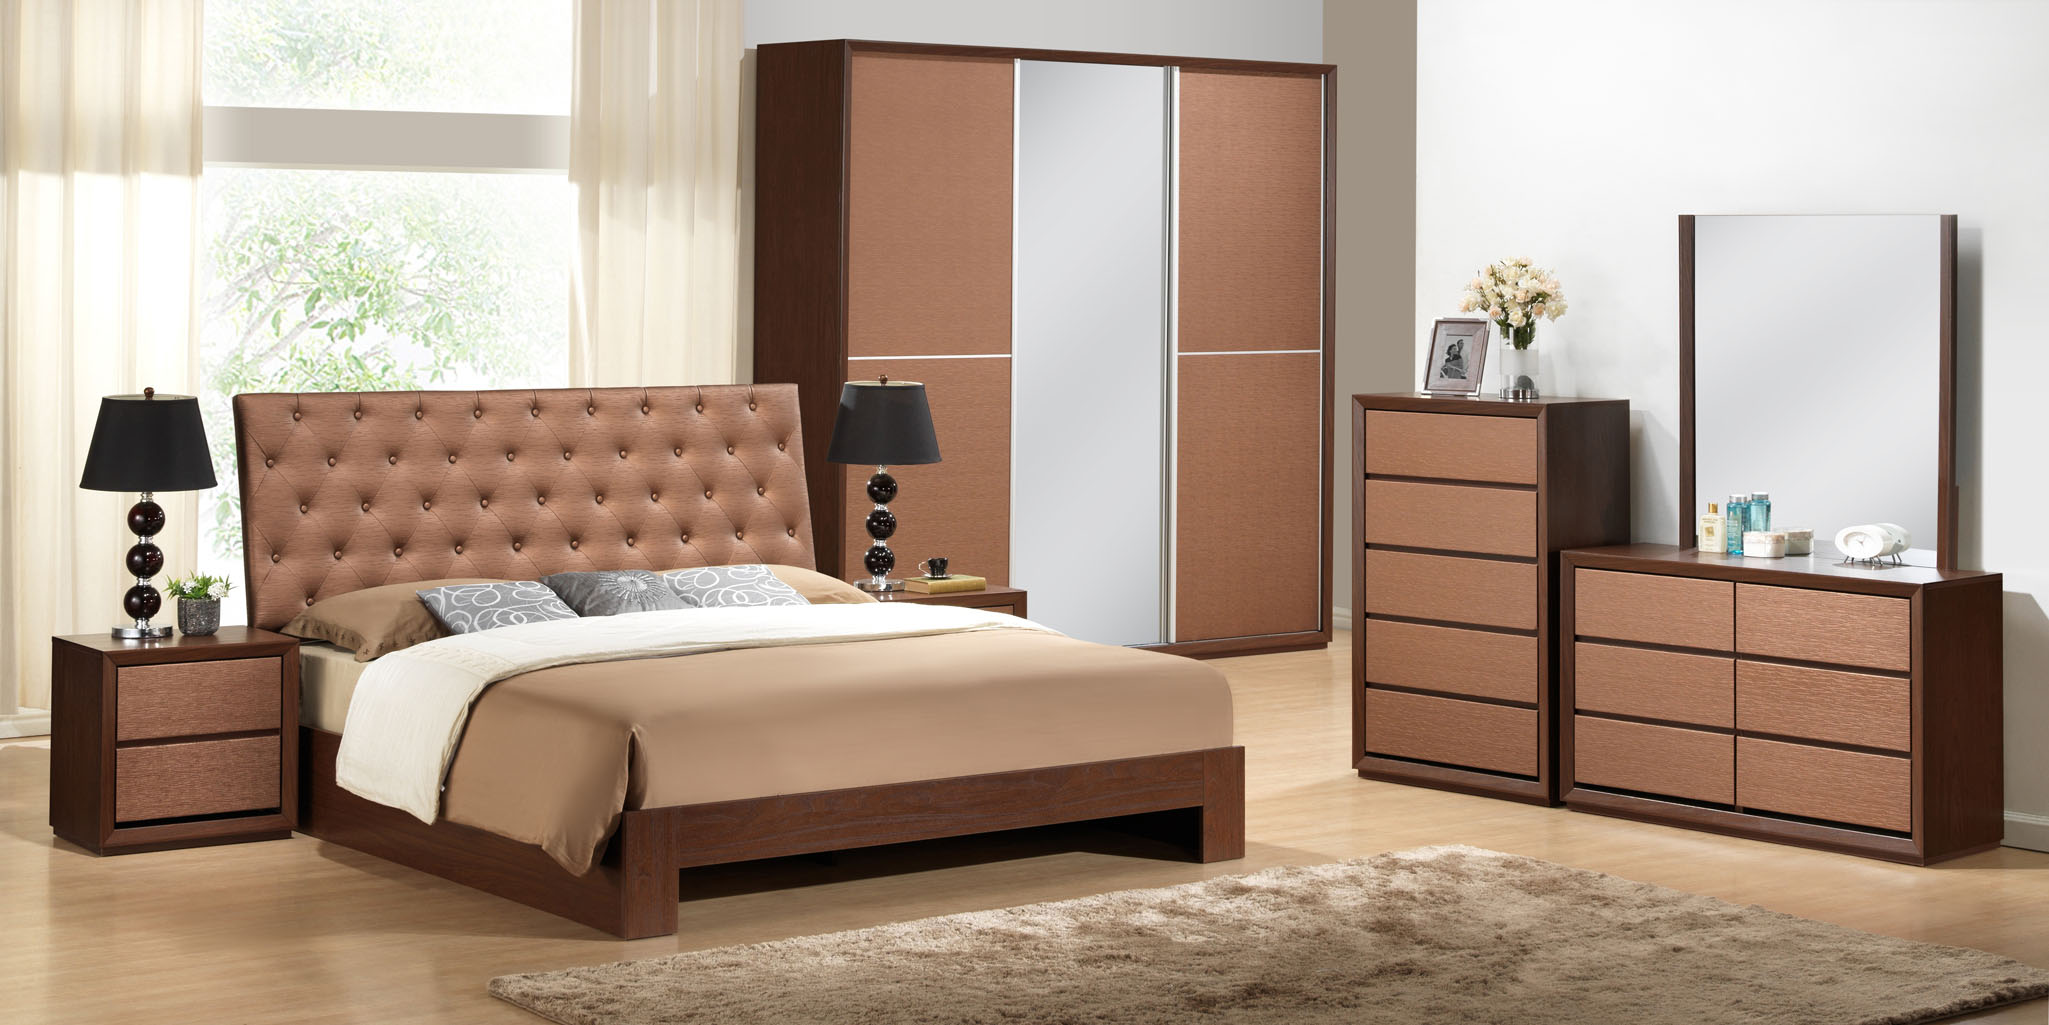 Quincy bedroom set fair production sdn bhd for Bedroom furniture